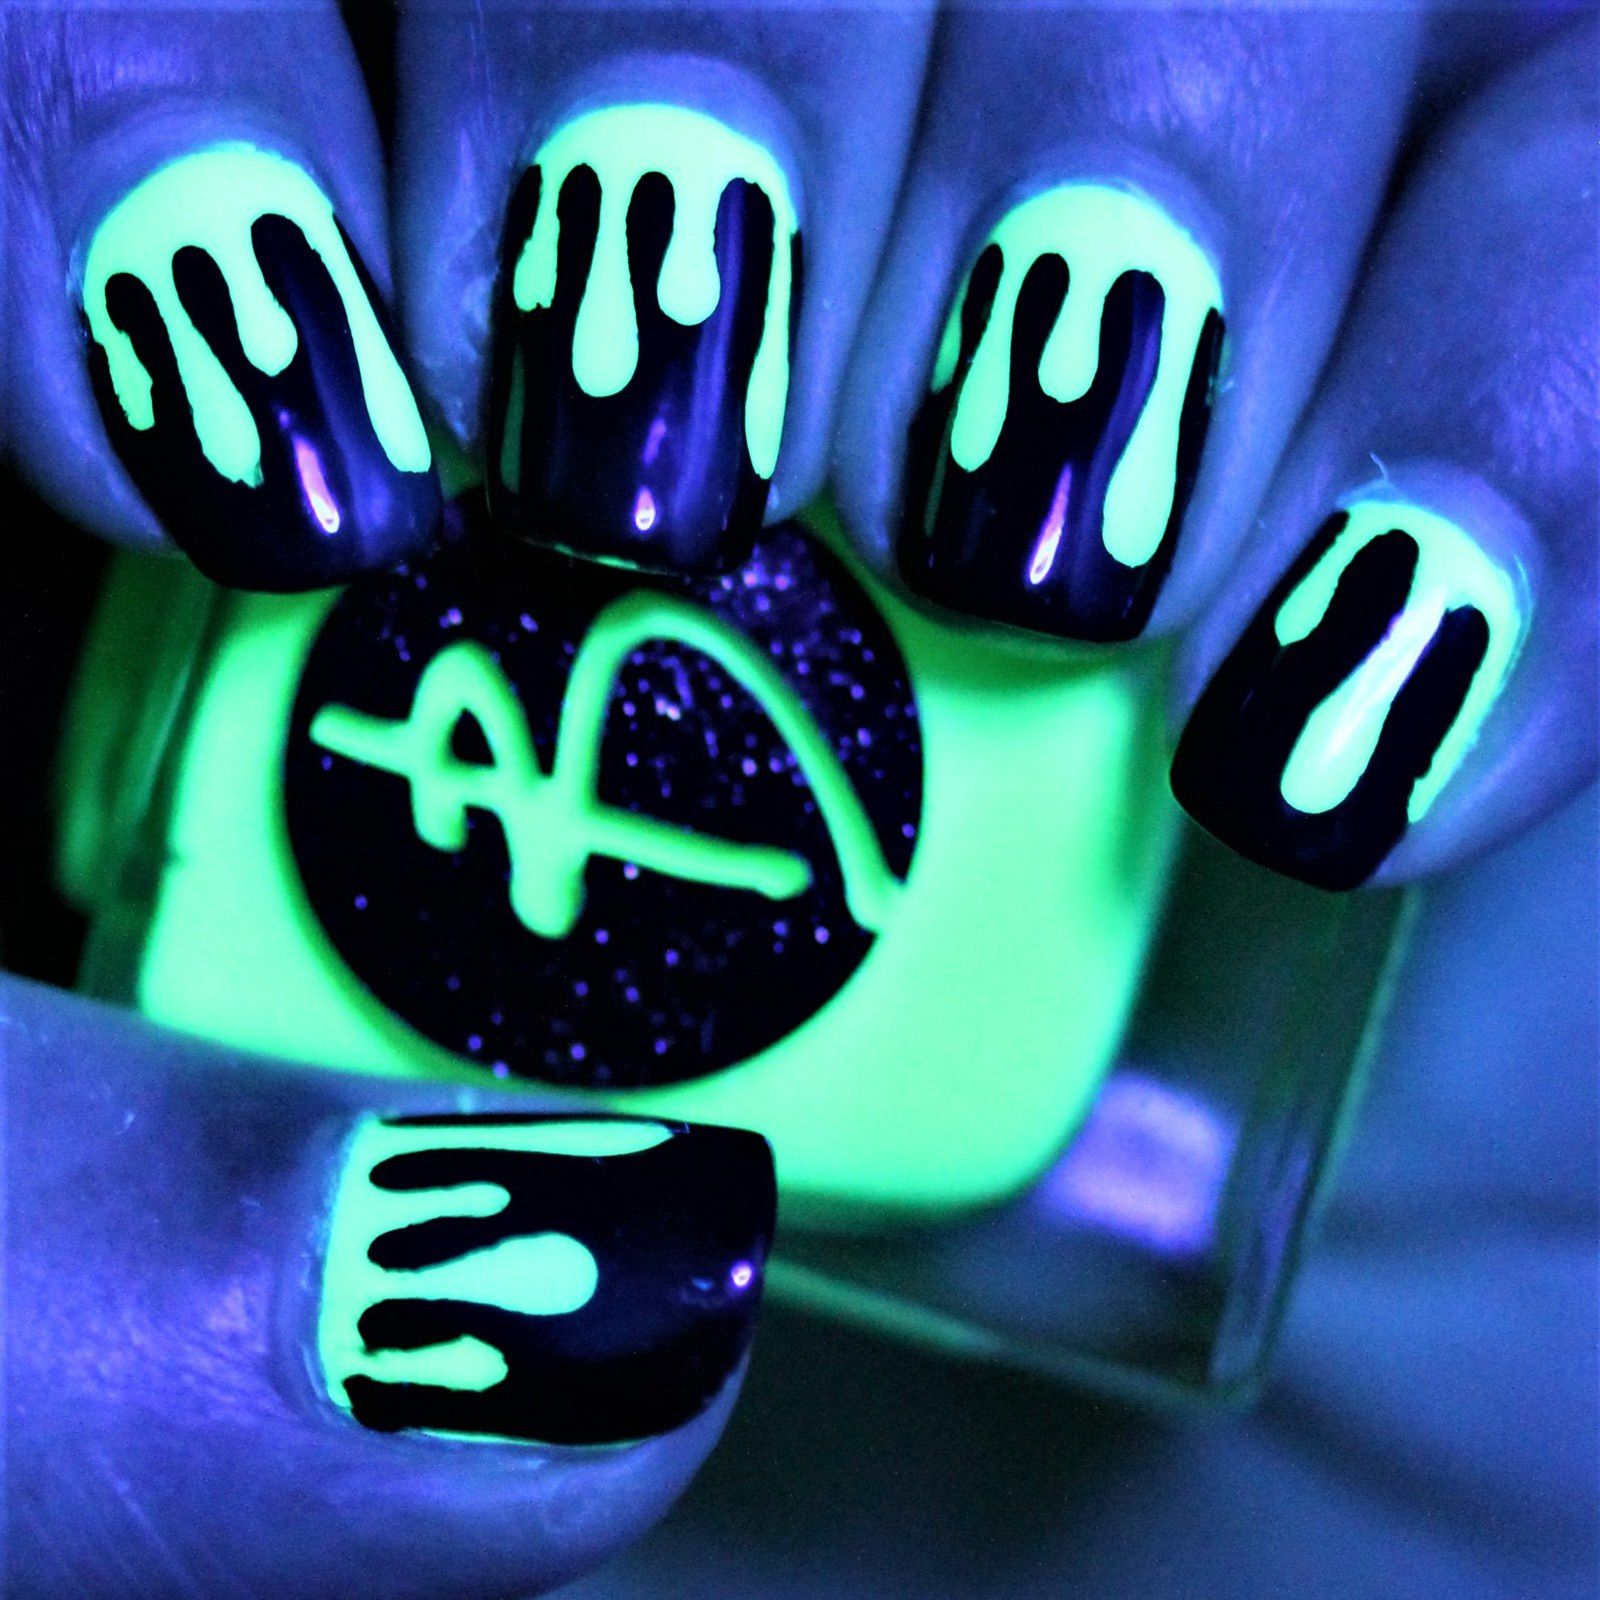 Essie Protein Base Coat / Bliss Polish Crazy in Cancun / Slime Drips Stencils from Whats Up Nails / Cult Nails Nevermore / HK Girl Top Coat